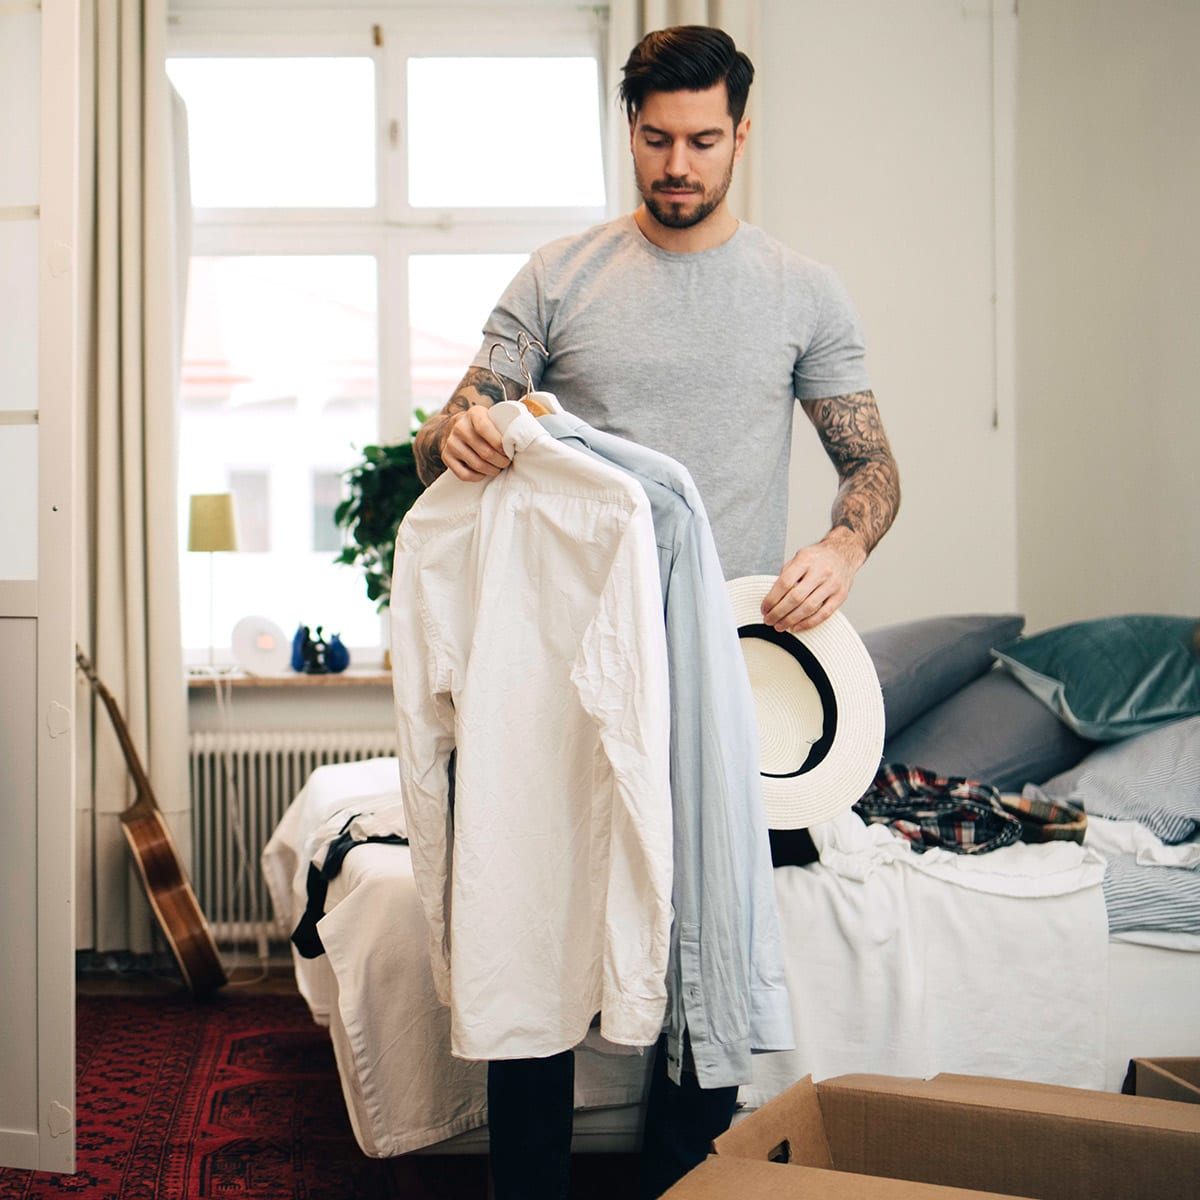 Man holding several shirts (on hangers) in his bedroom.